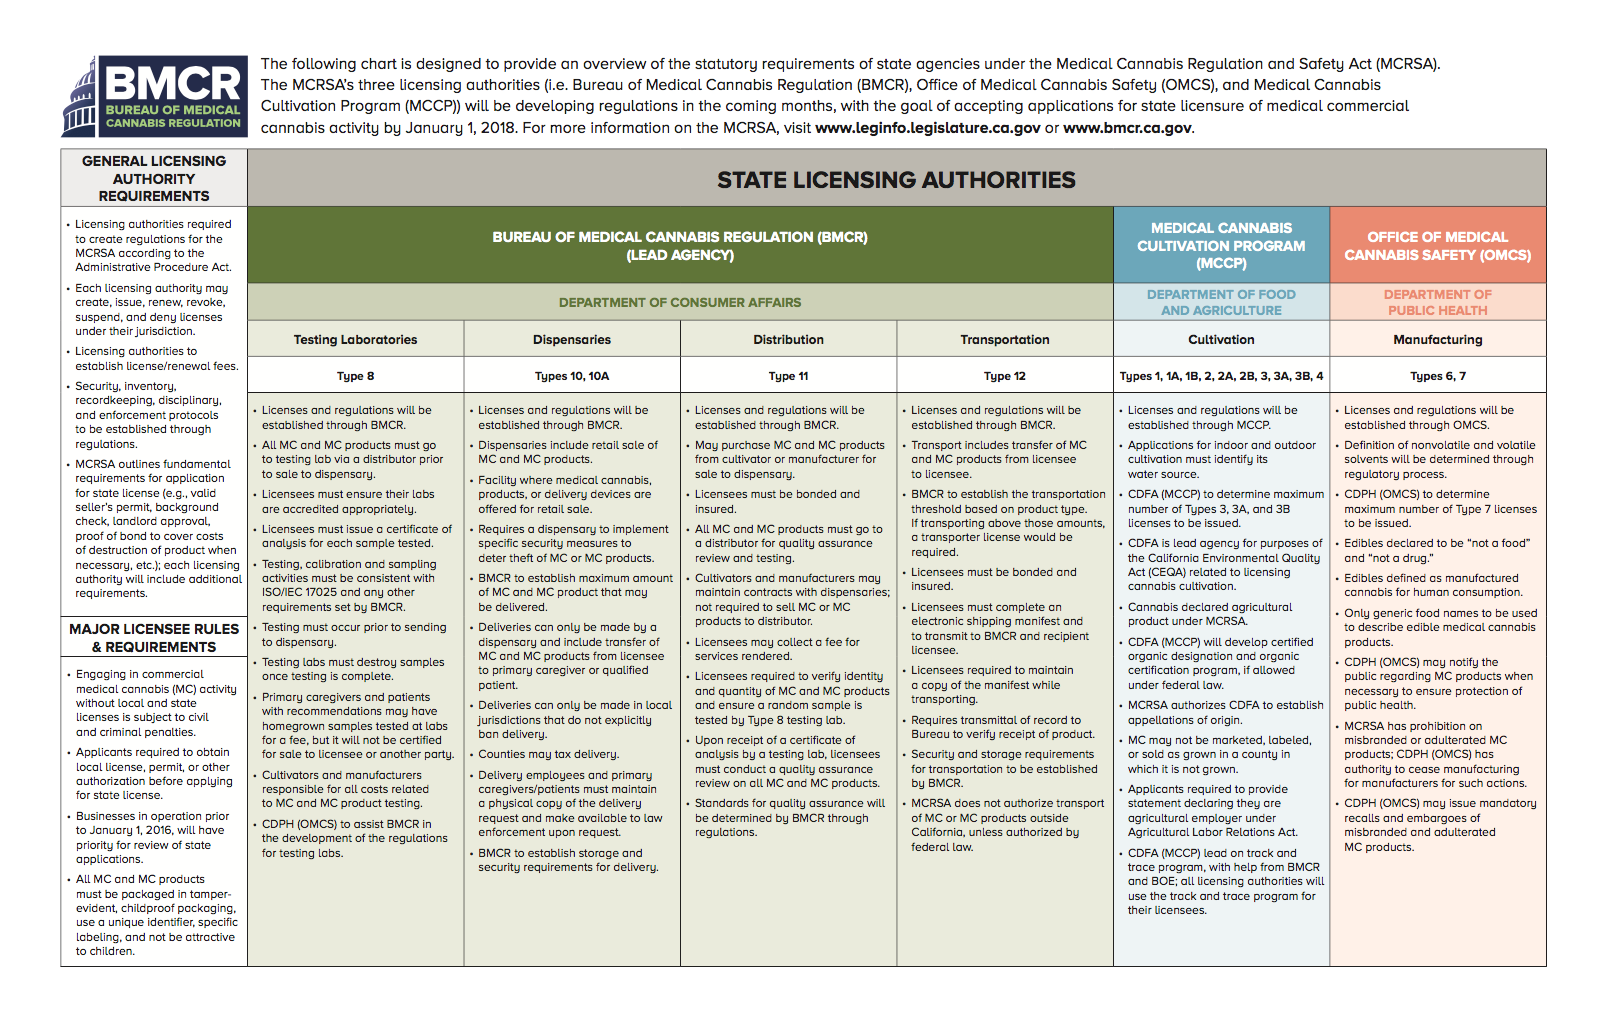 BMCR state licensing authorities chart